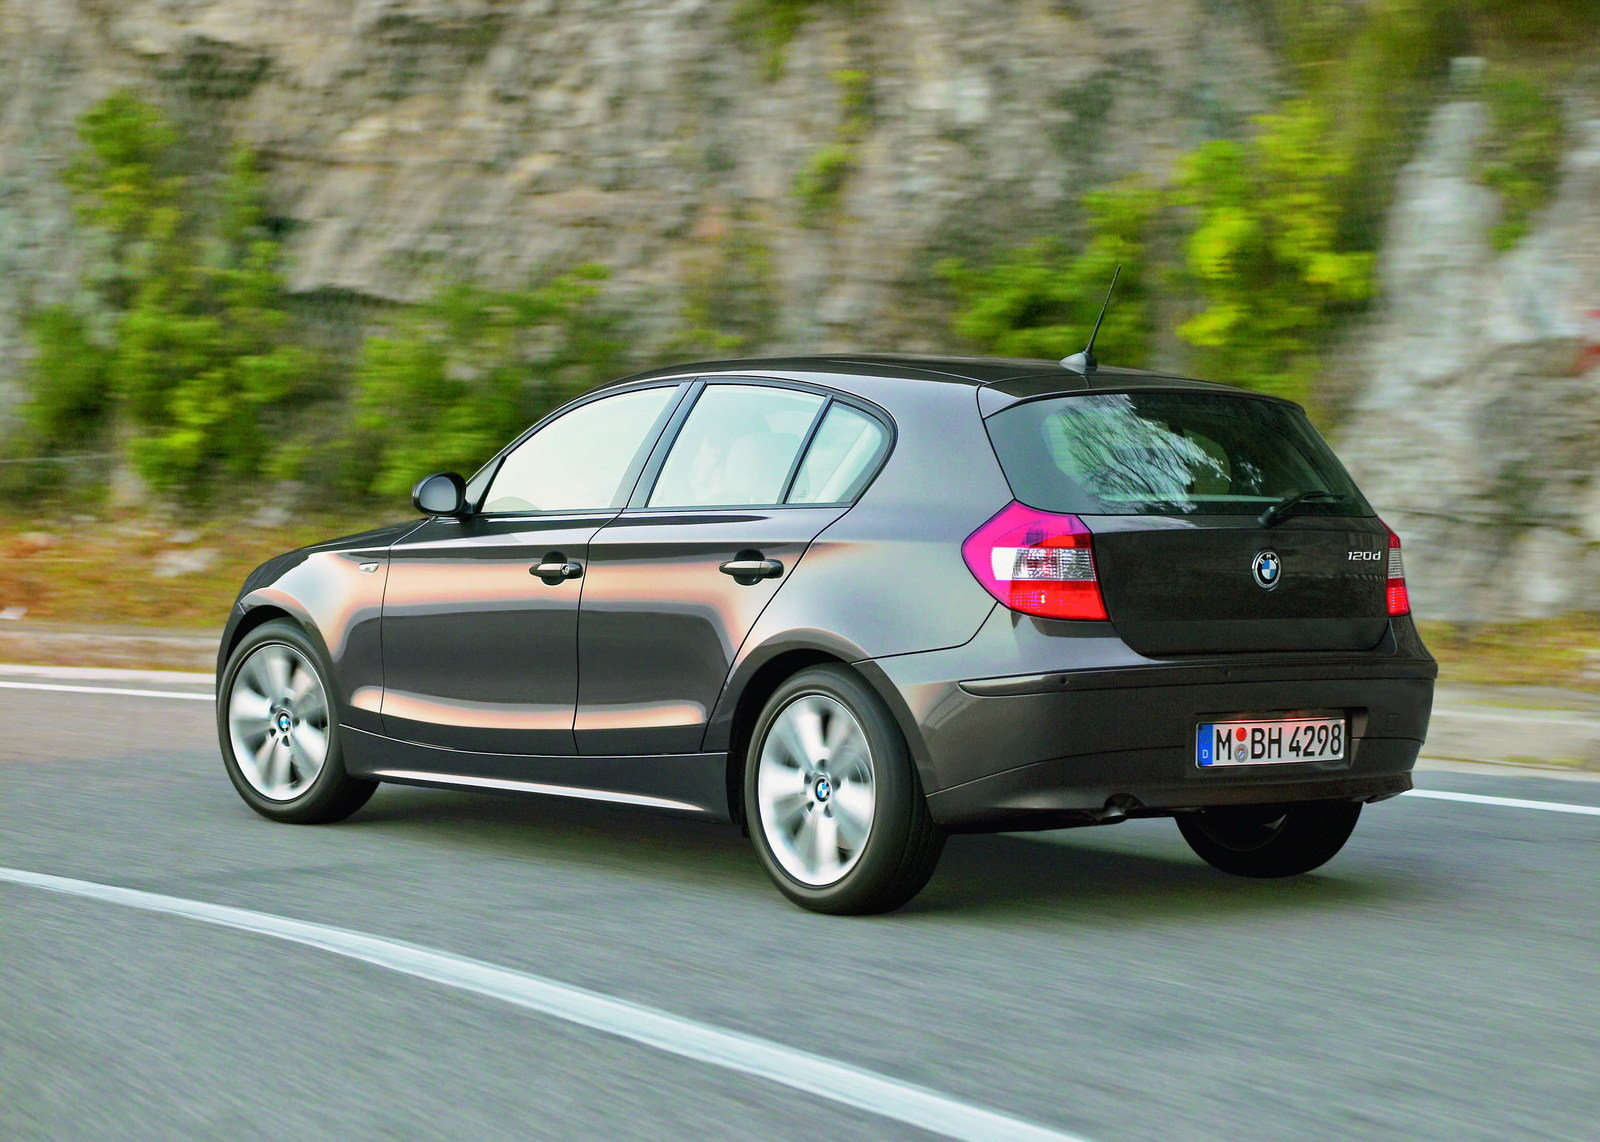 2006 bmw 1 series picture 116155 car review top speed. Black Bedroom Furniture Sets. Home Design Ideas